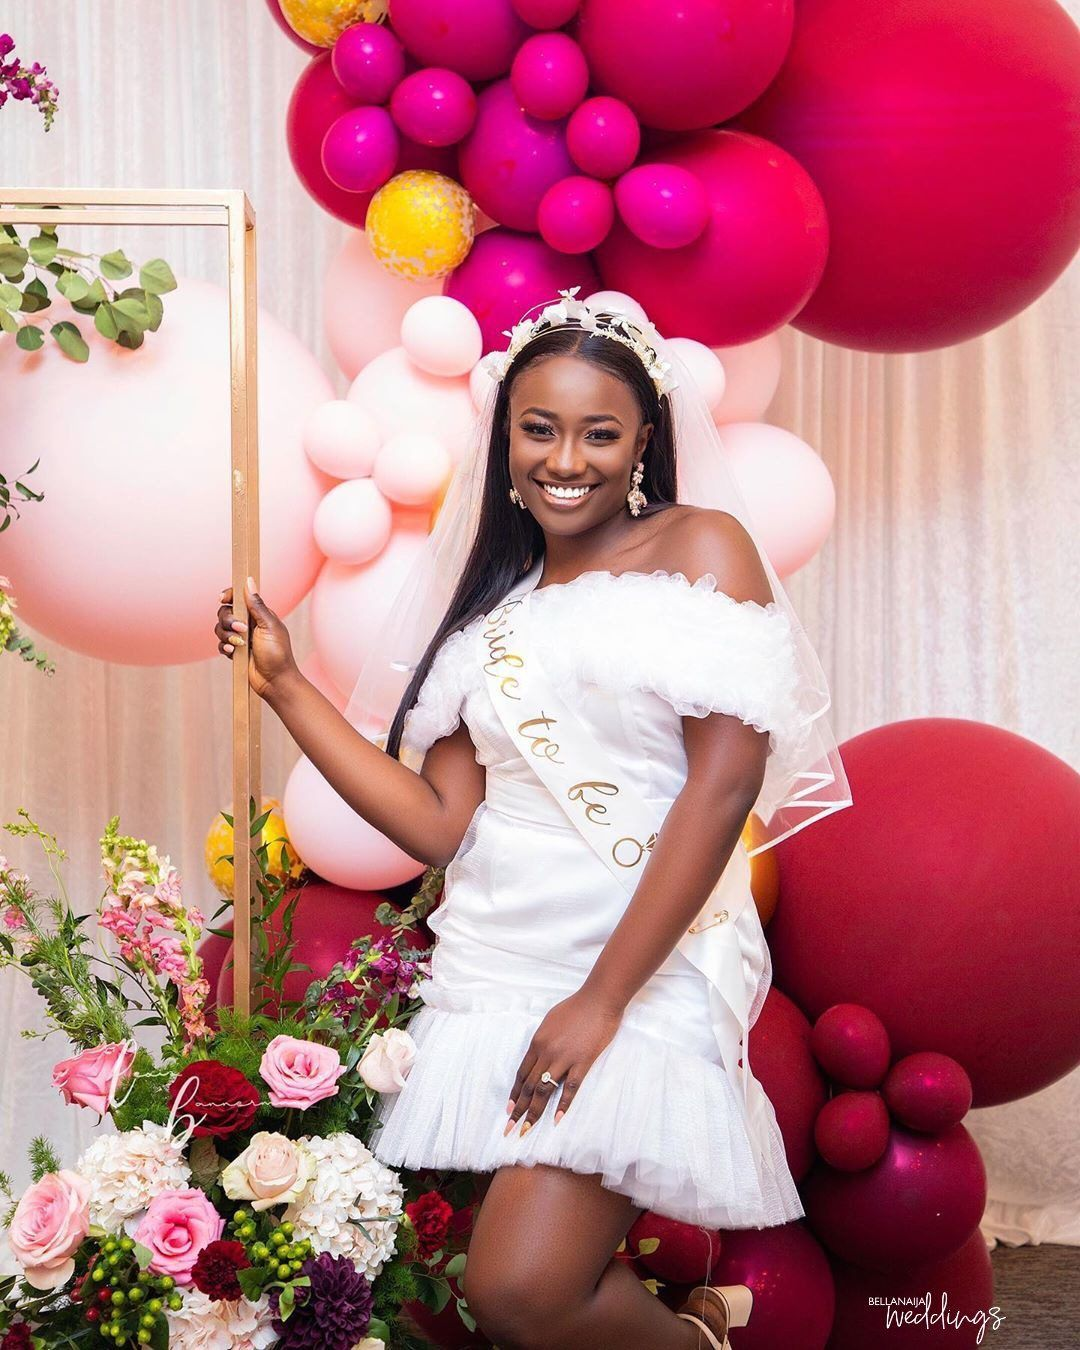 Bridget S Surprise Bridal Shower Was All Shades Of Sweet In 2020 Bridal Shower Bride Outfit Nigerian Bridal Shower Bridal Shower Dress